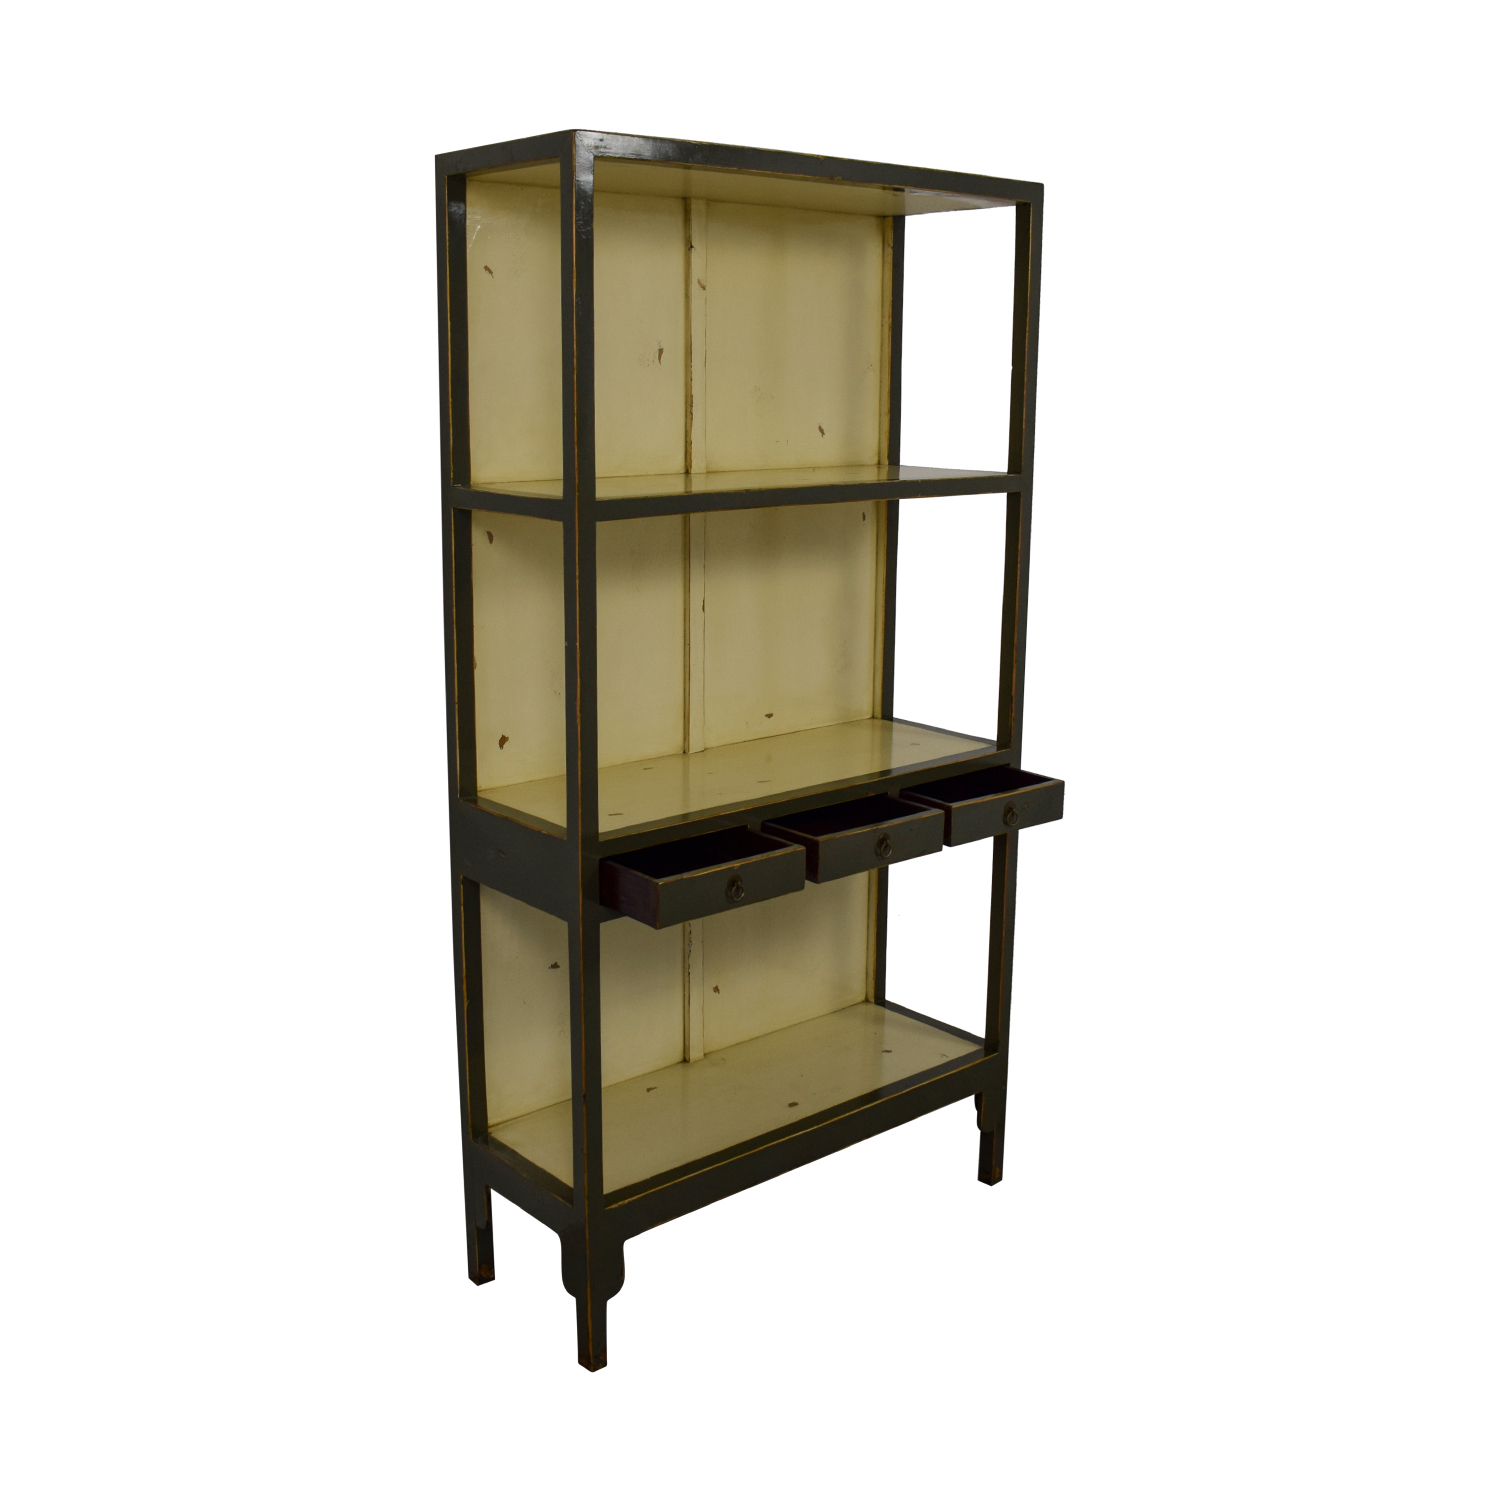 Horchow Horchow Distressed Decorative Shelving Green